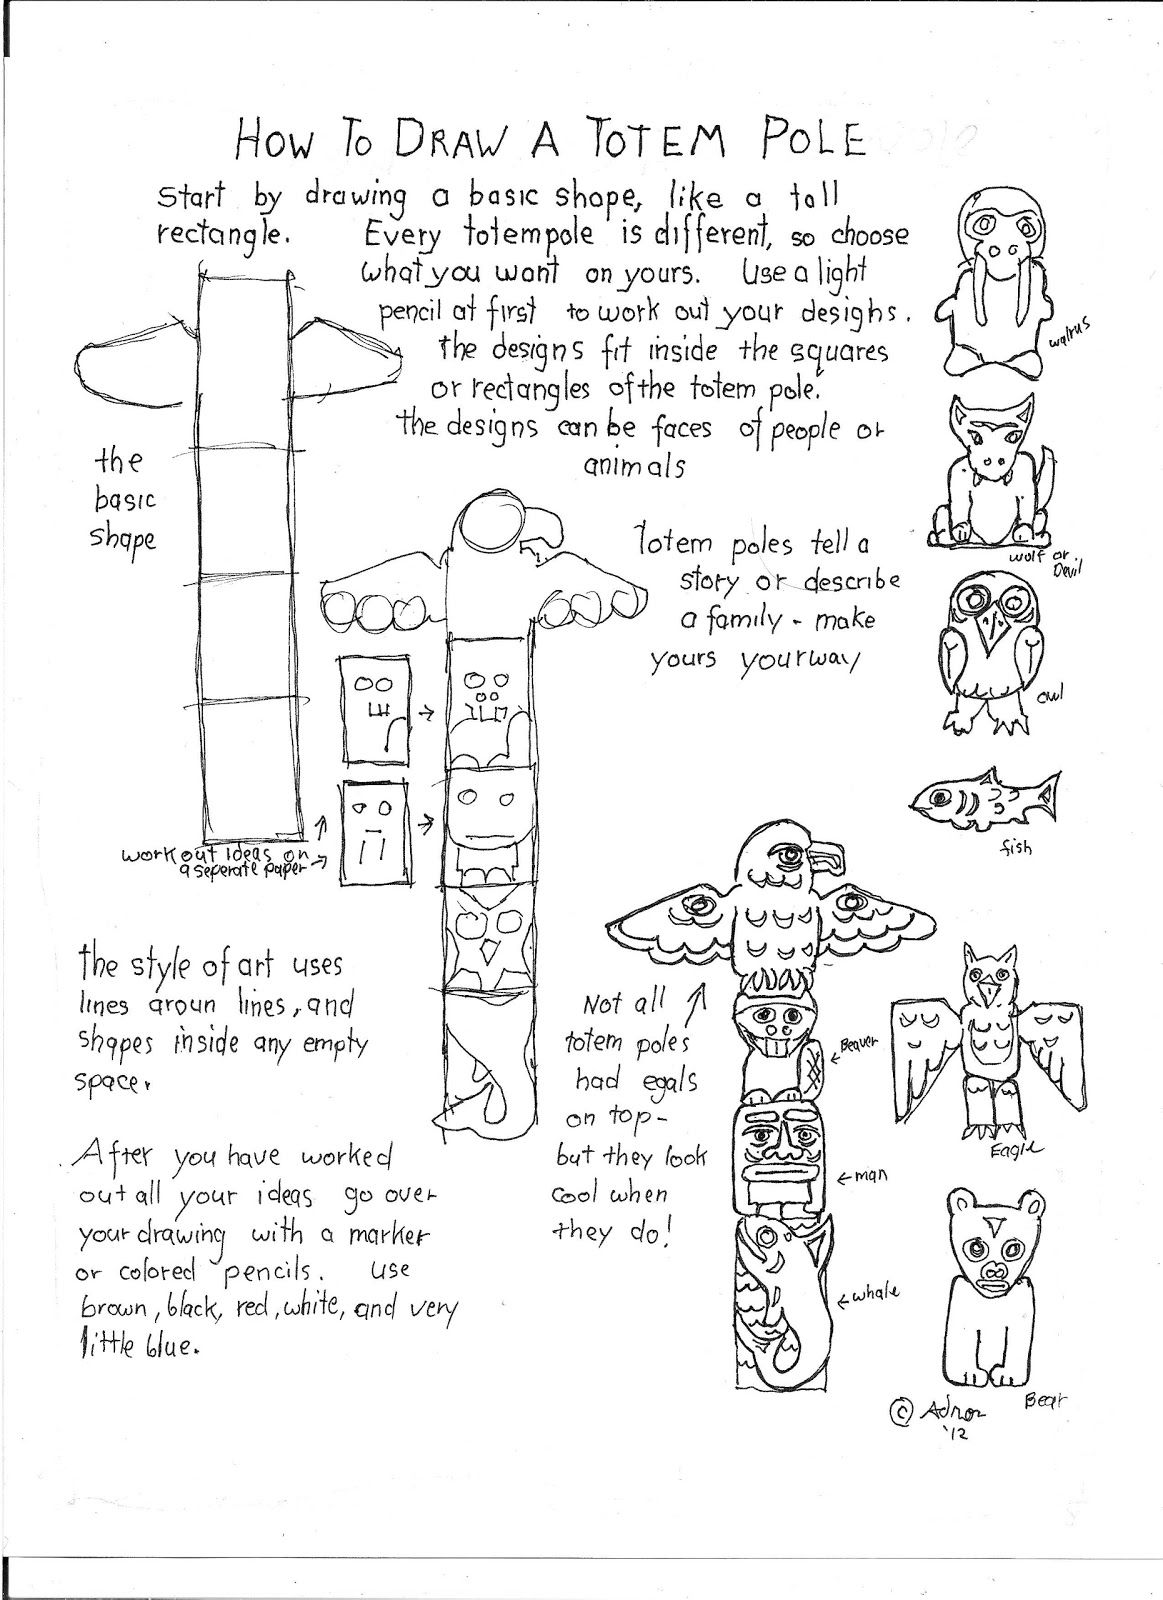 How to draw a totem pole printable worksheet | Native ...